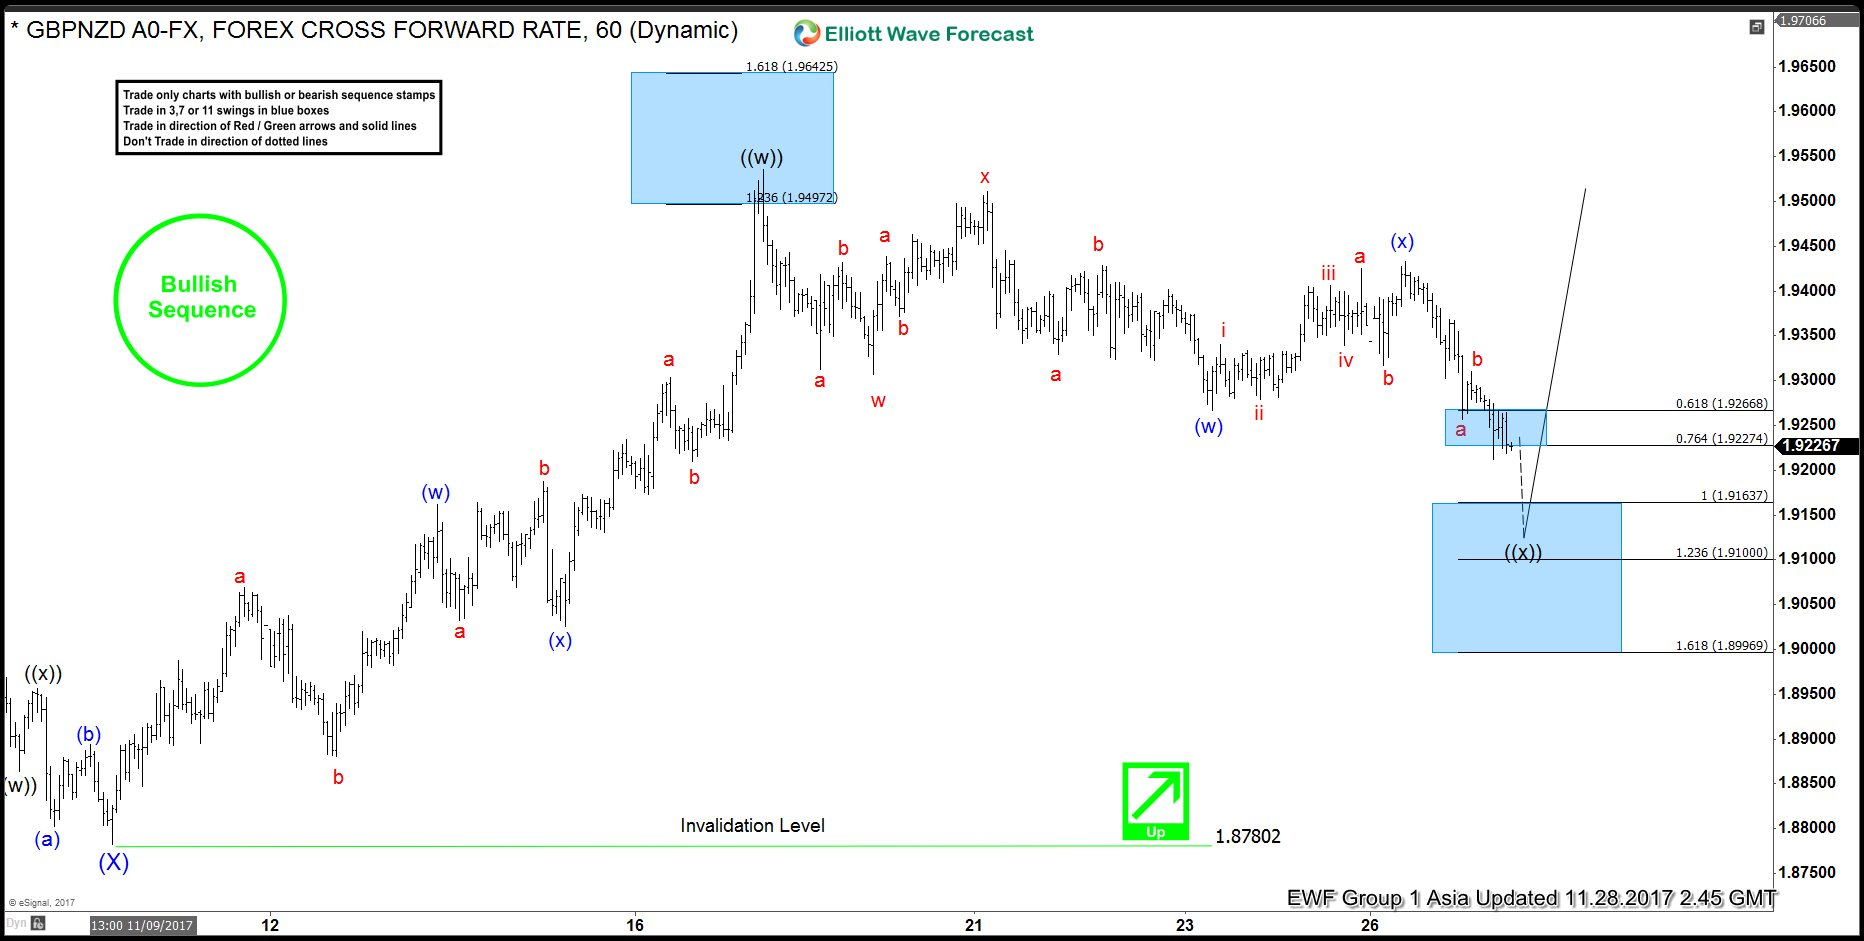 GBPNZD Elliott Wave Forecast : Trade from 11/27 Live Trading Room